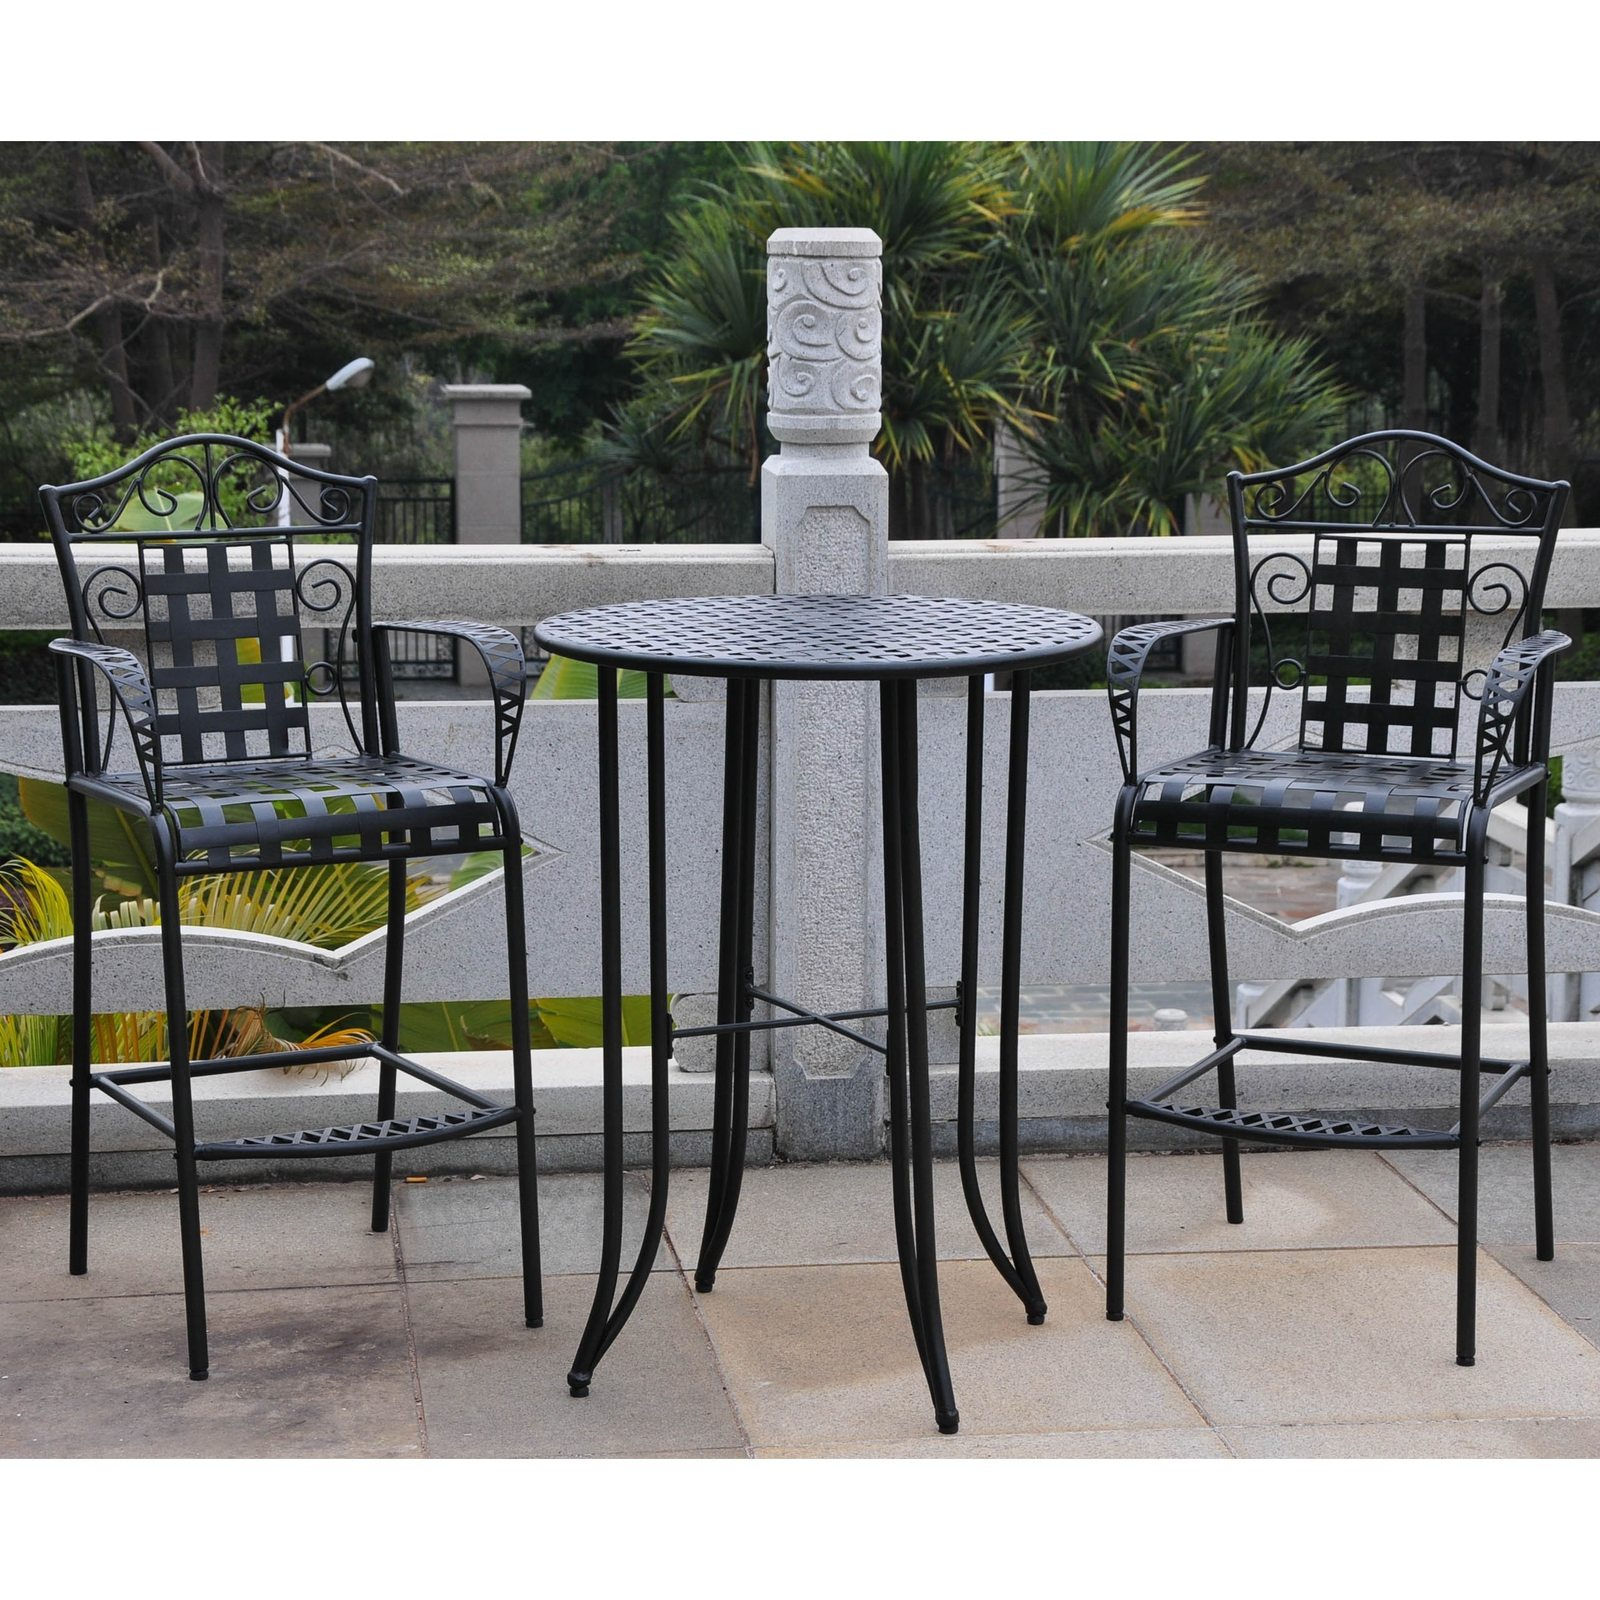 Wrought Iron Bistro Set Tall Patio Deck Garden Bar Footrest